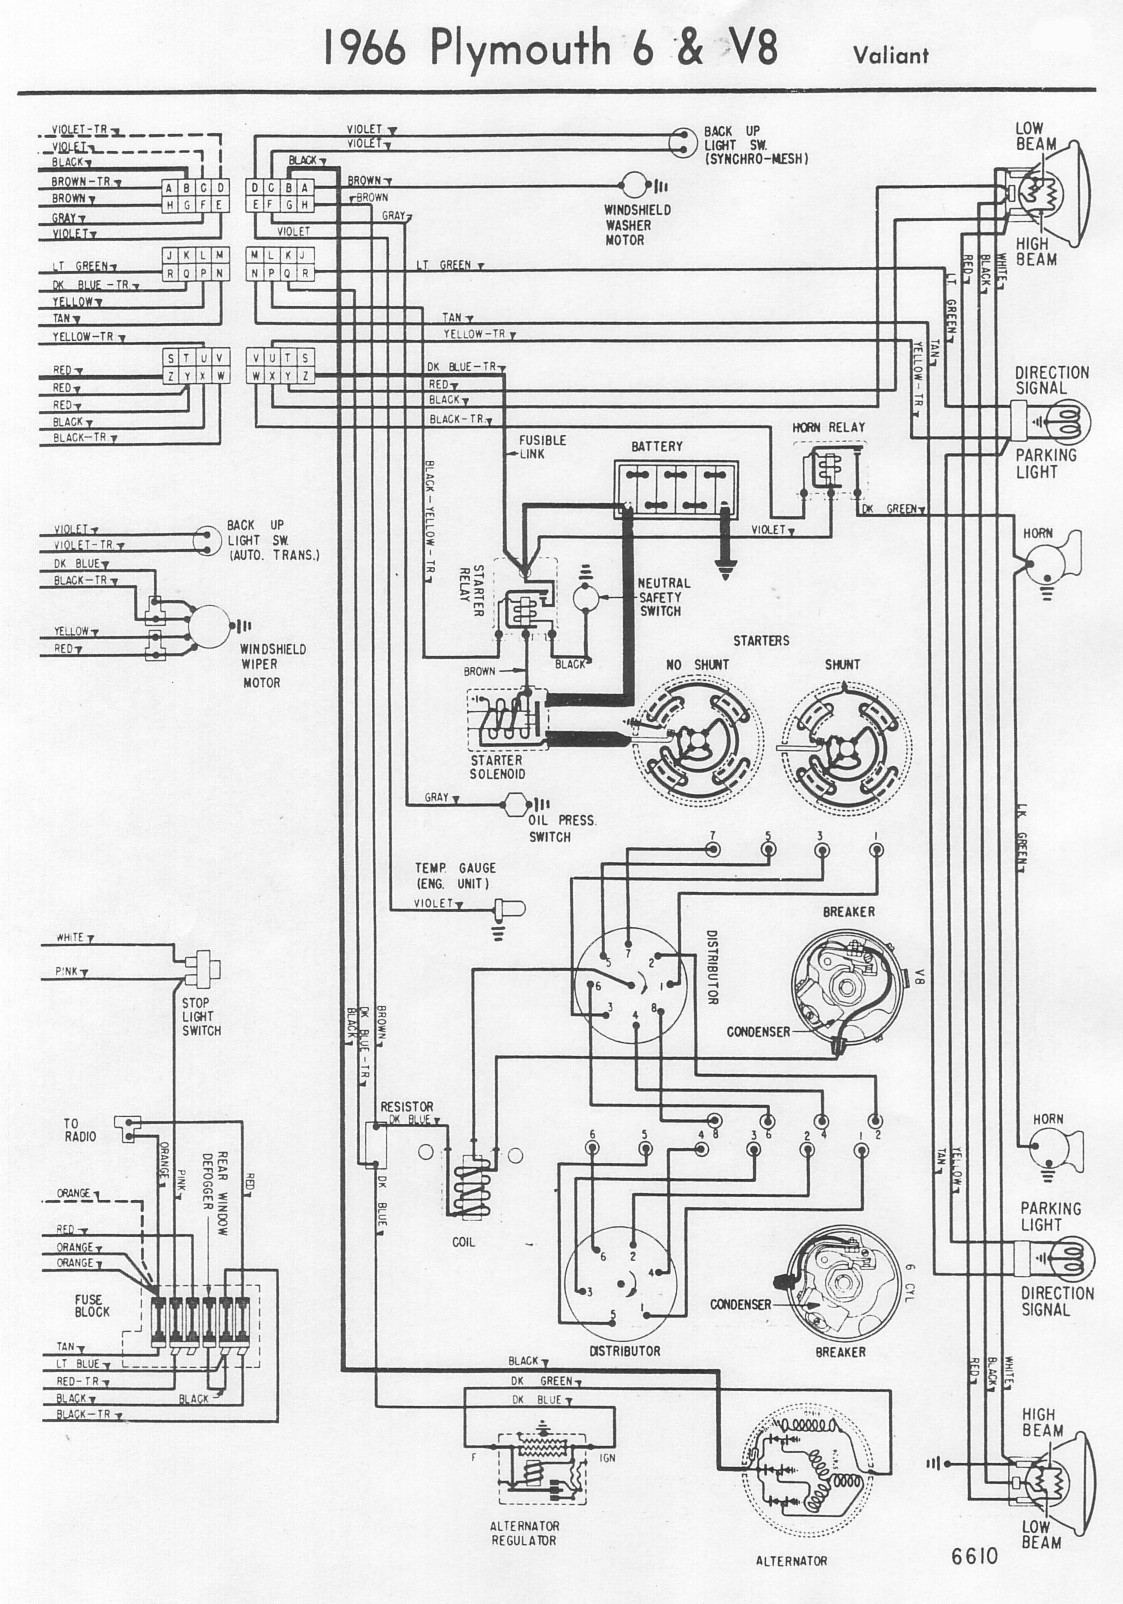 E6816 68 Mustang Dash Wiring Diagram Free Picture | Wiring Resources Wiring Resources